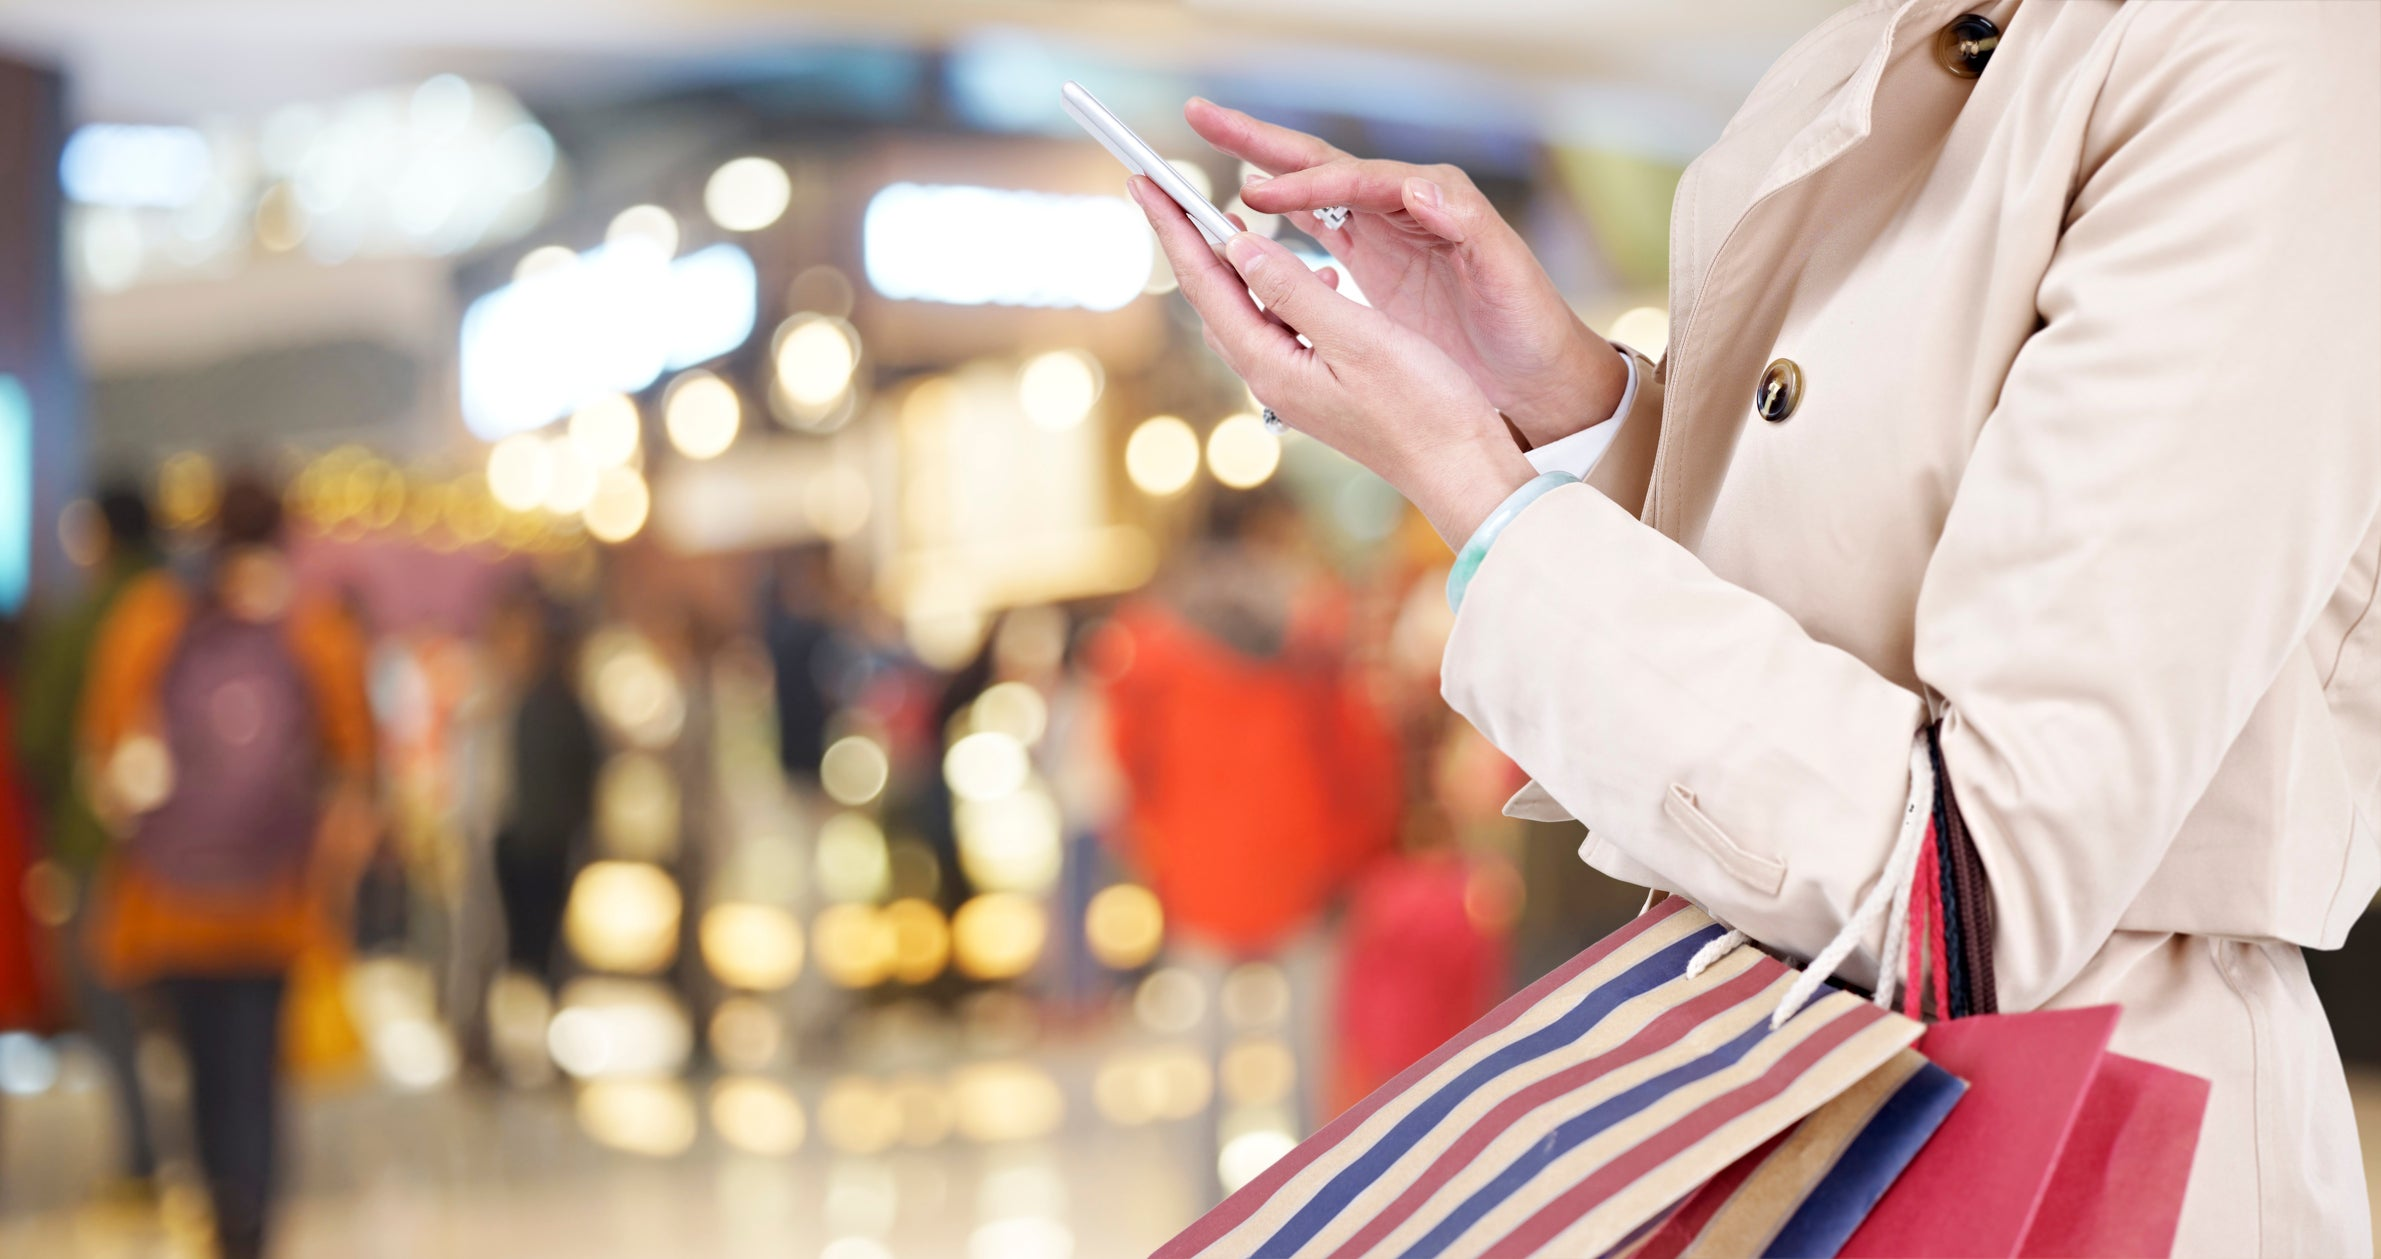 What Do Consumers Want From a Retail Store? | The Motley Fool